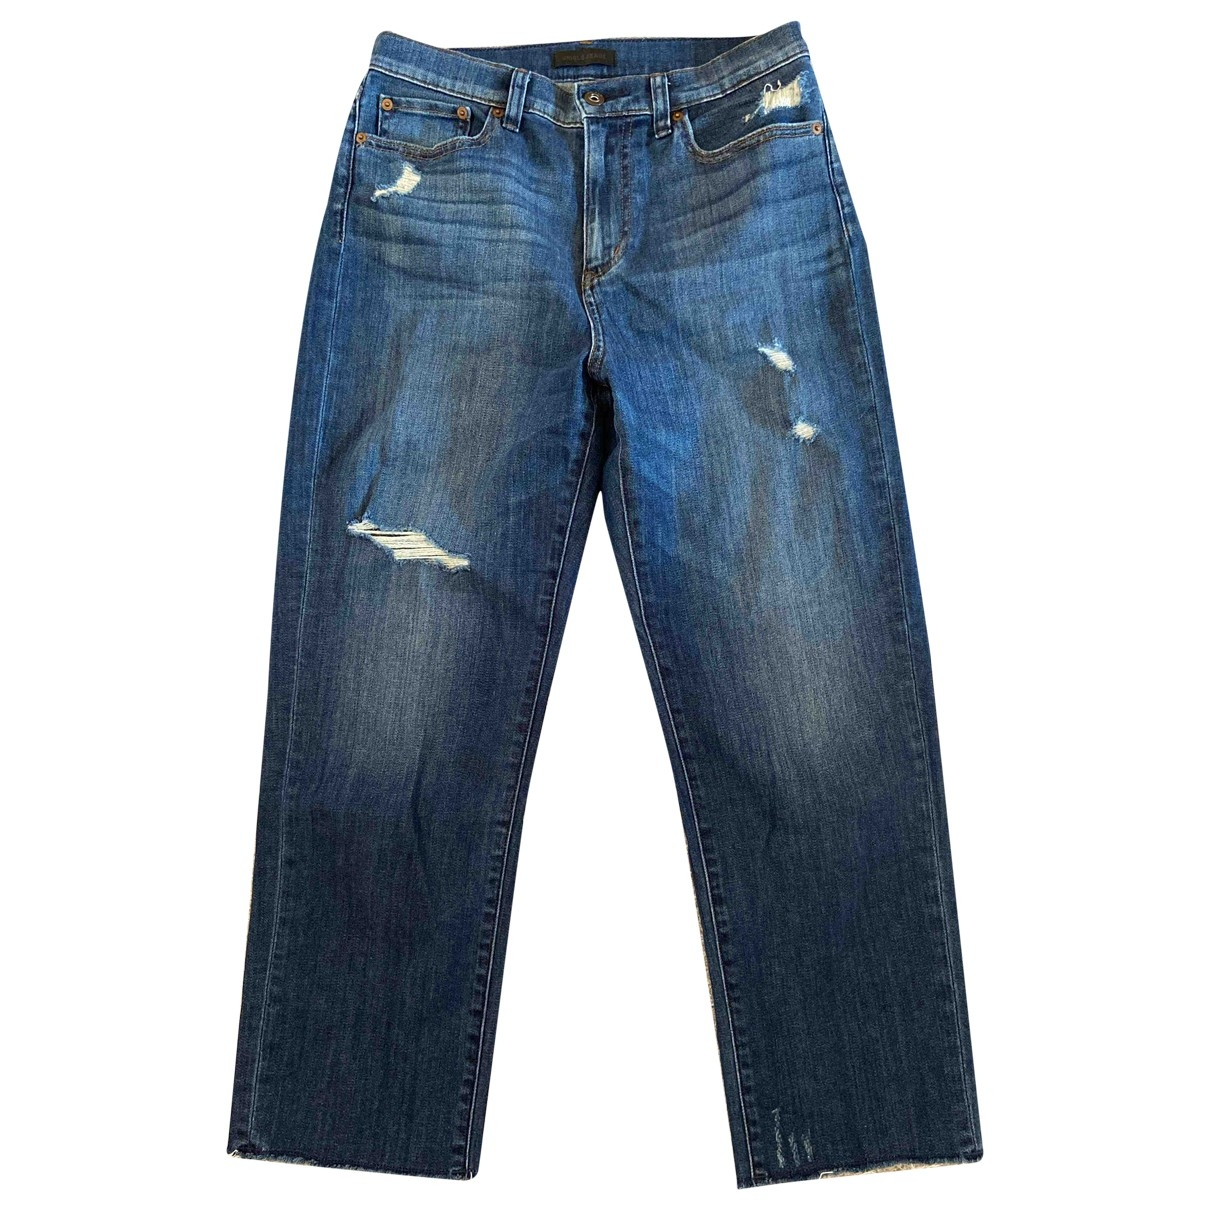 Uniqlo \N Blue Cotton - elasthane Jeans for Women 26 US